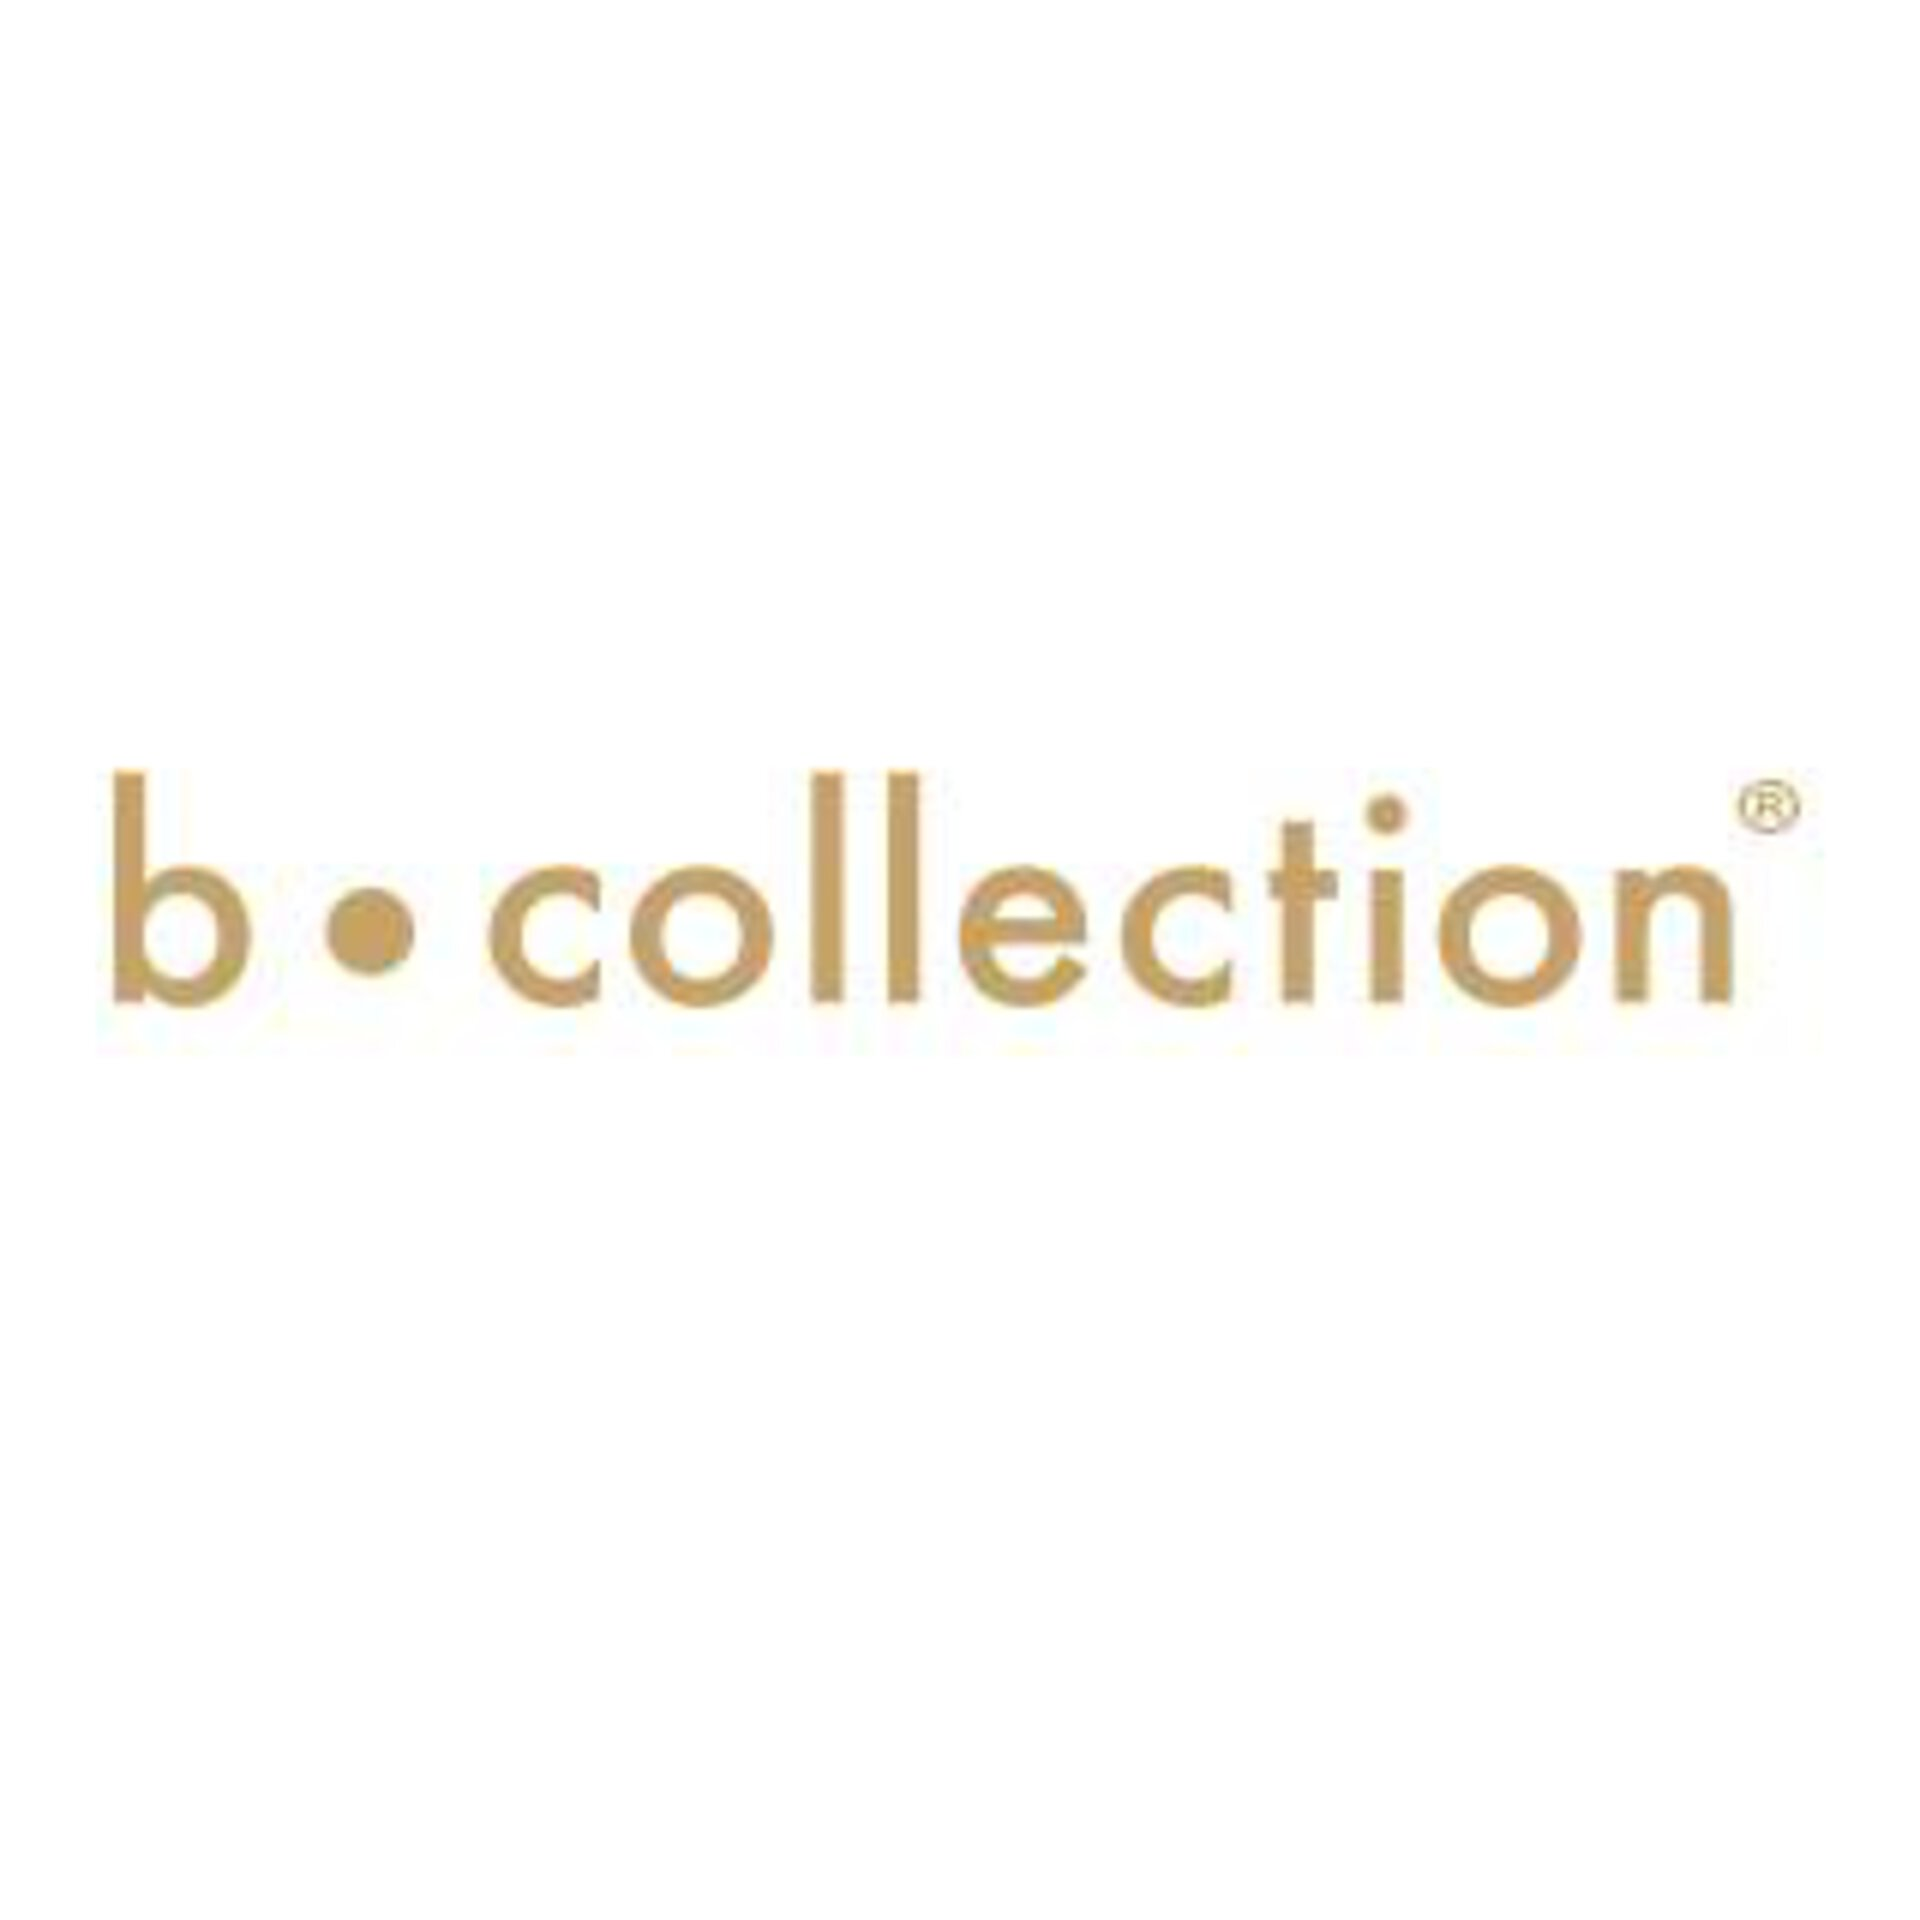 b-collection